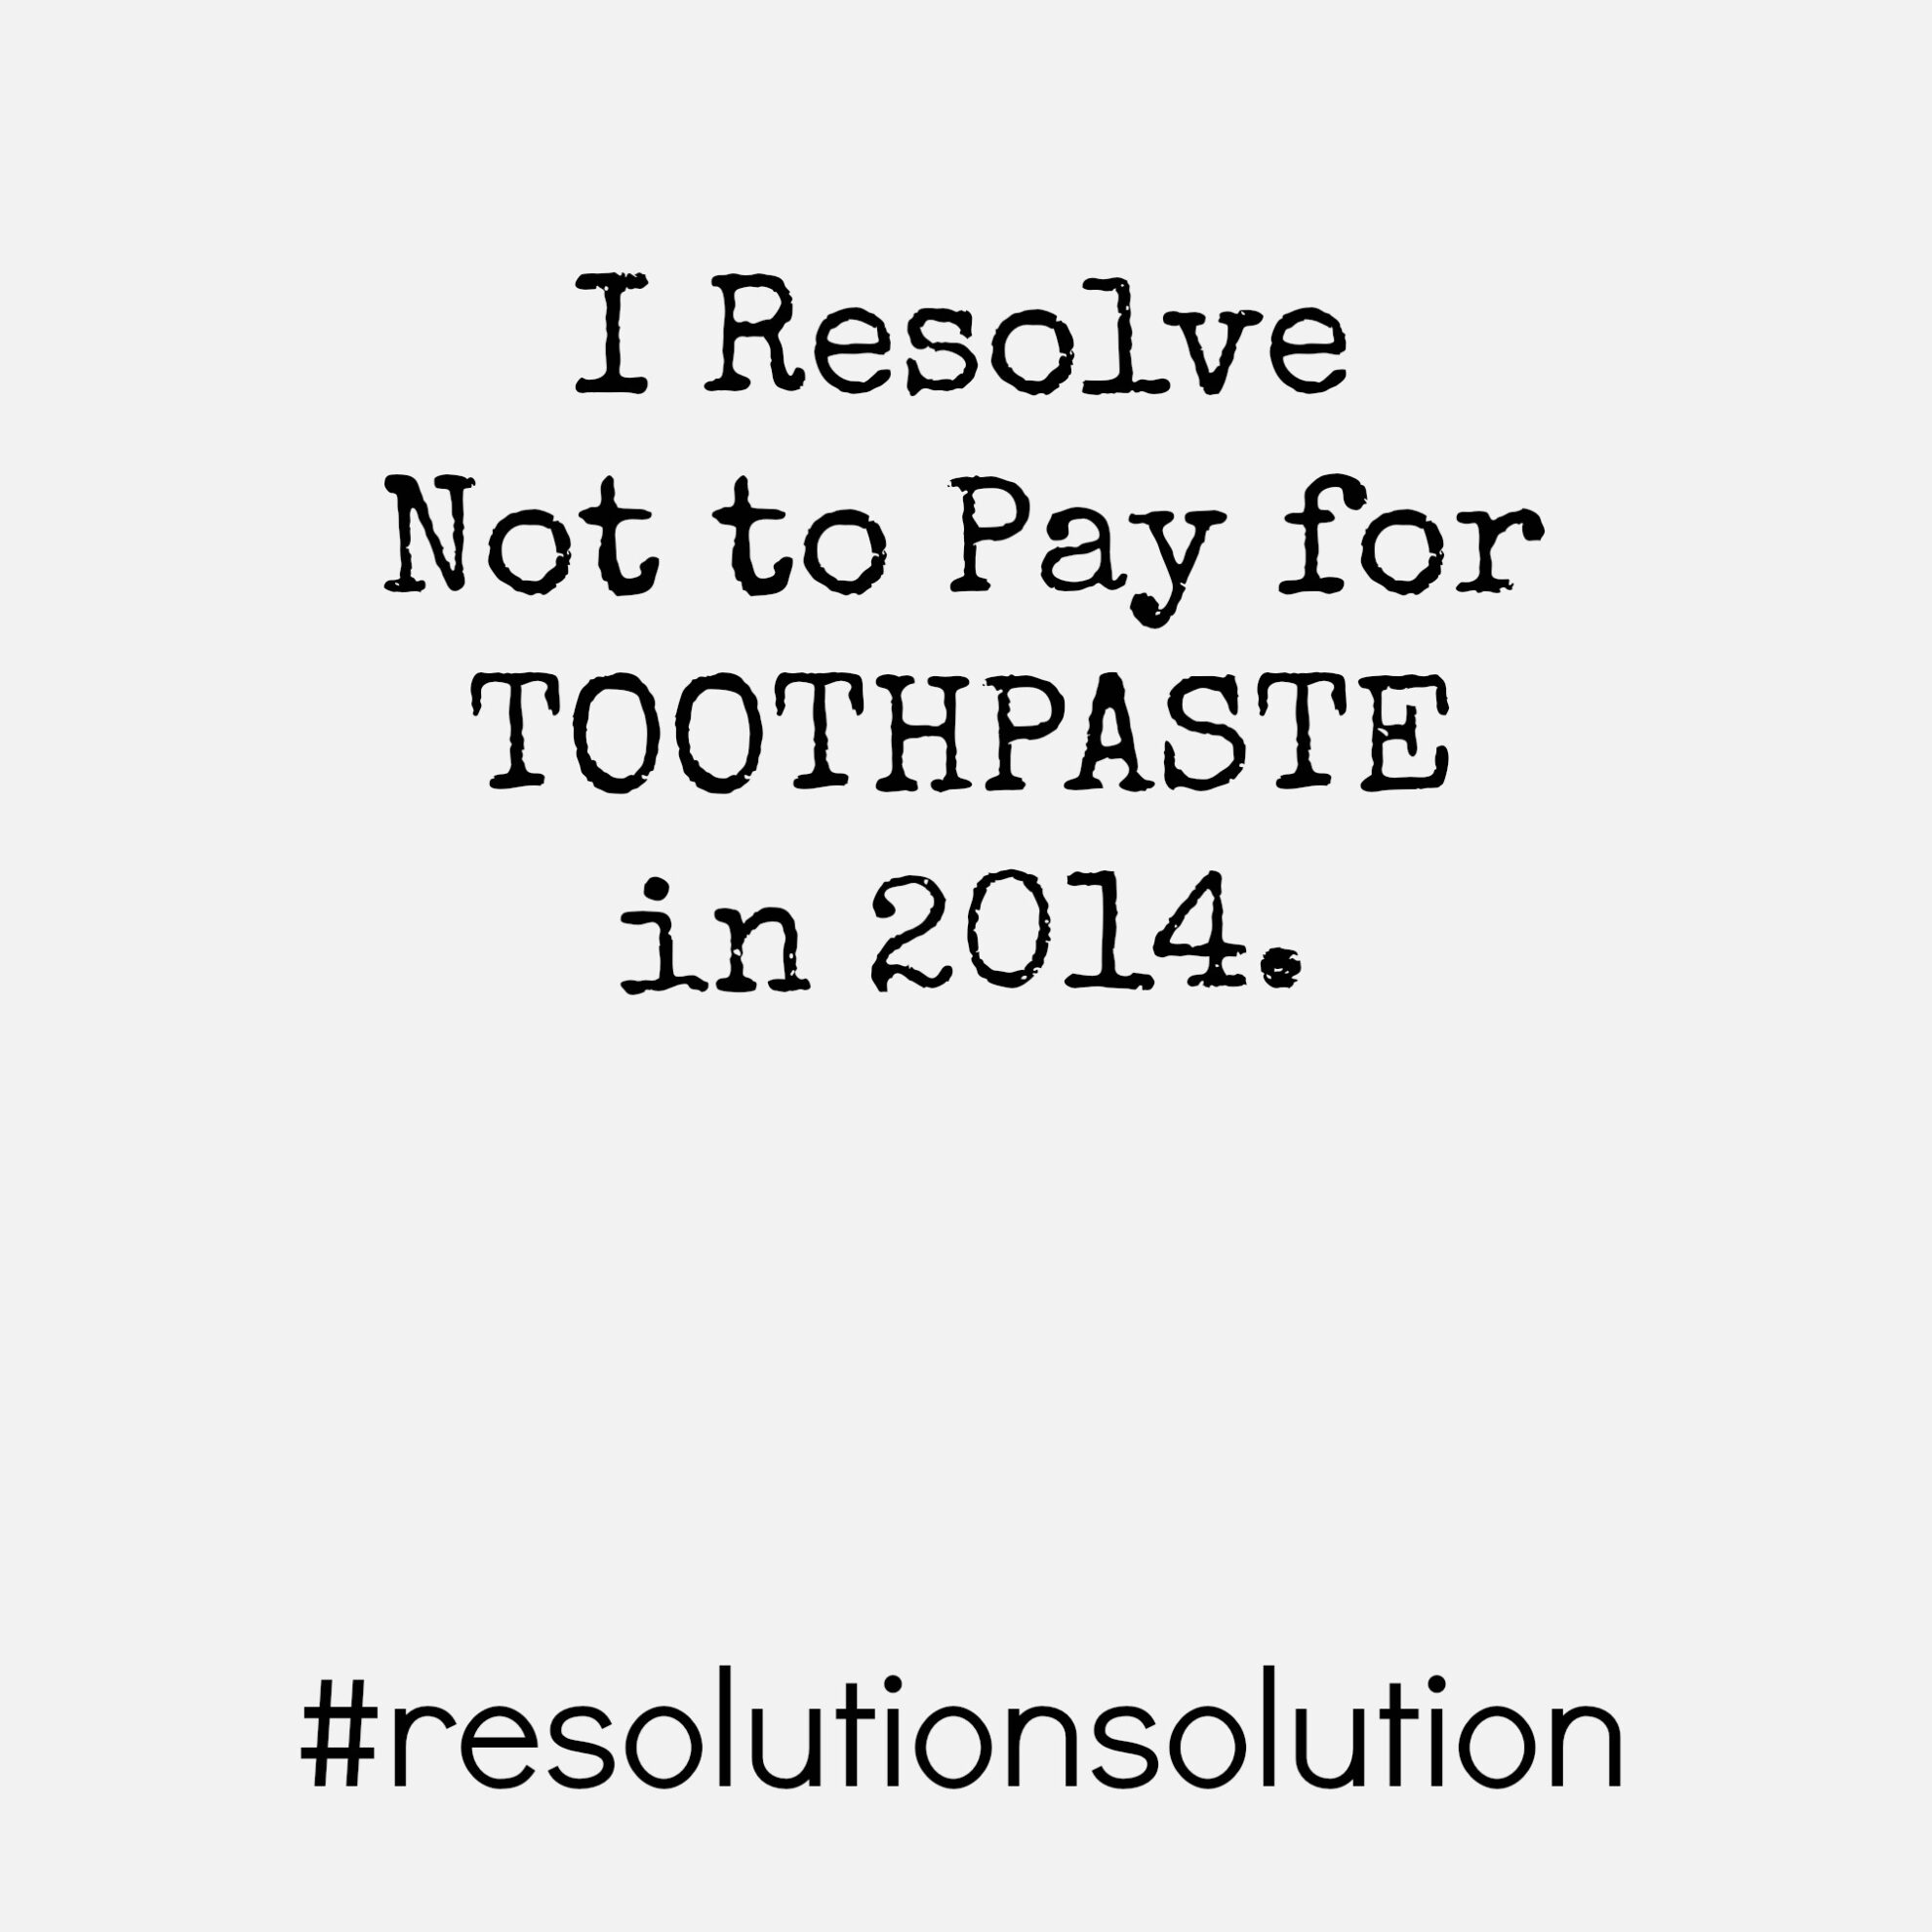 toothpaste resolution